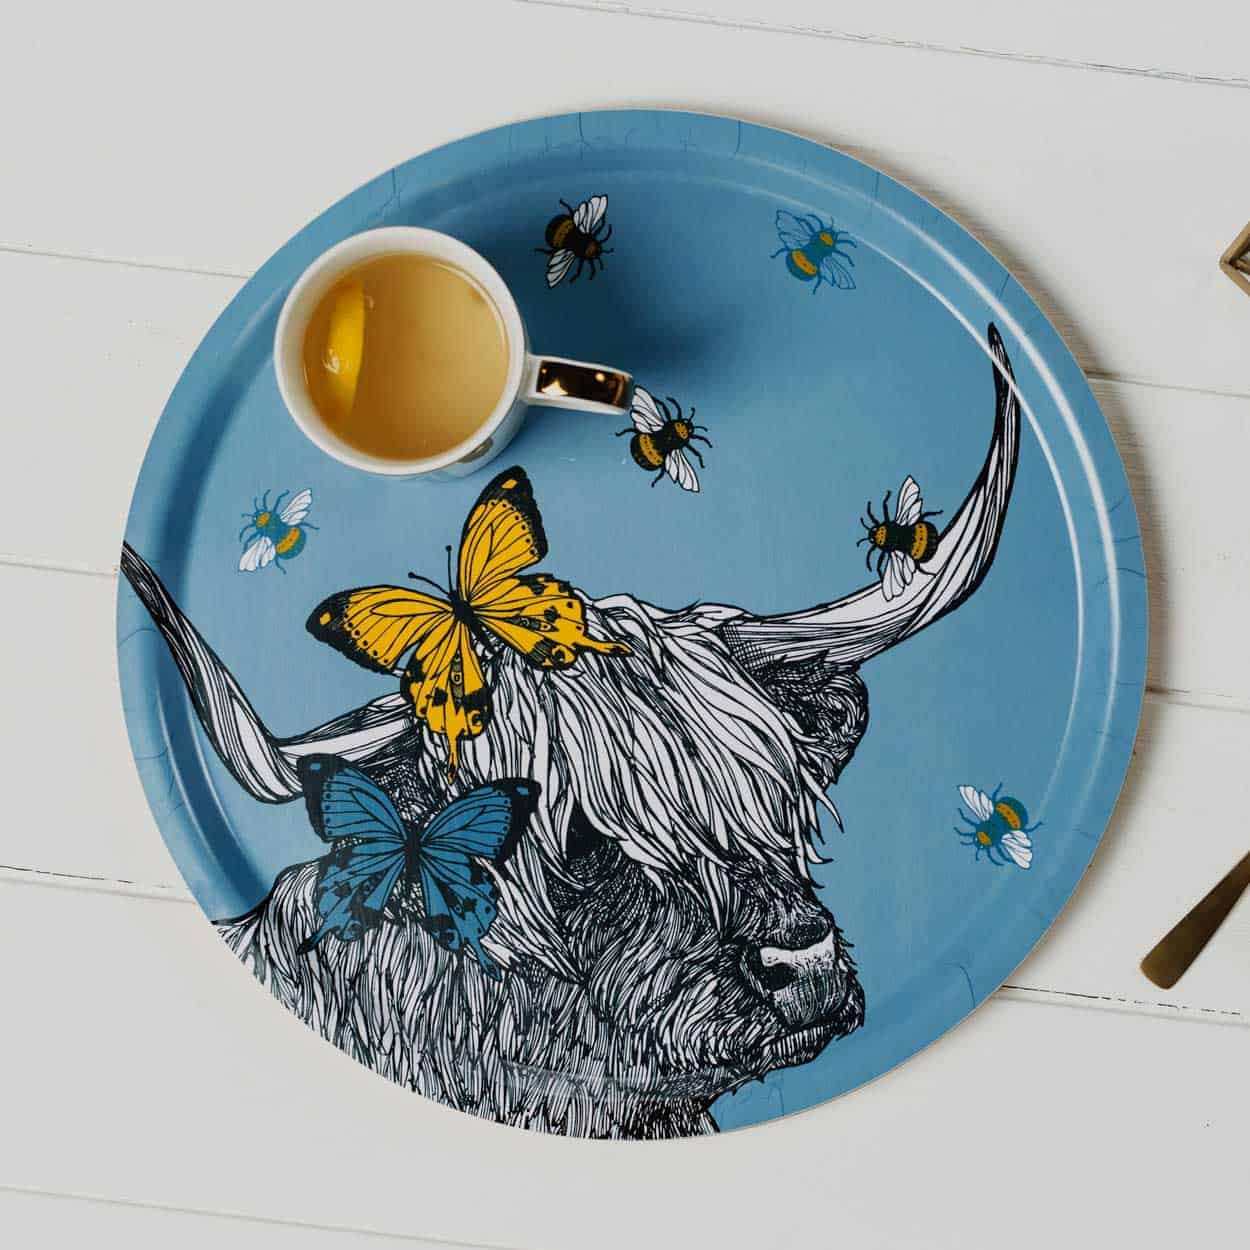 Beautiful Lola Highland Cow serving tray by Gillian Kyle